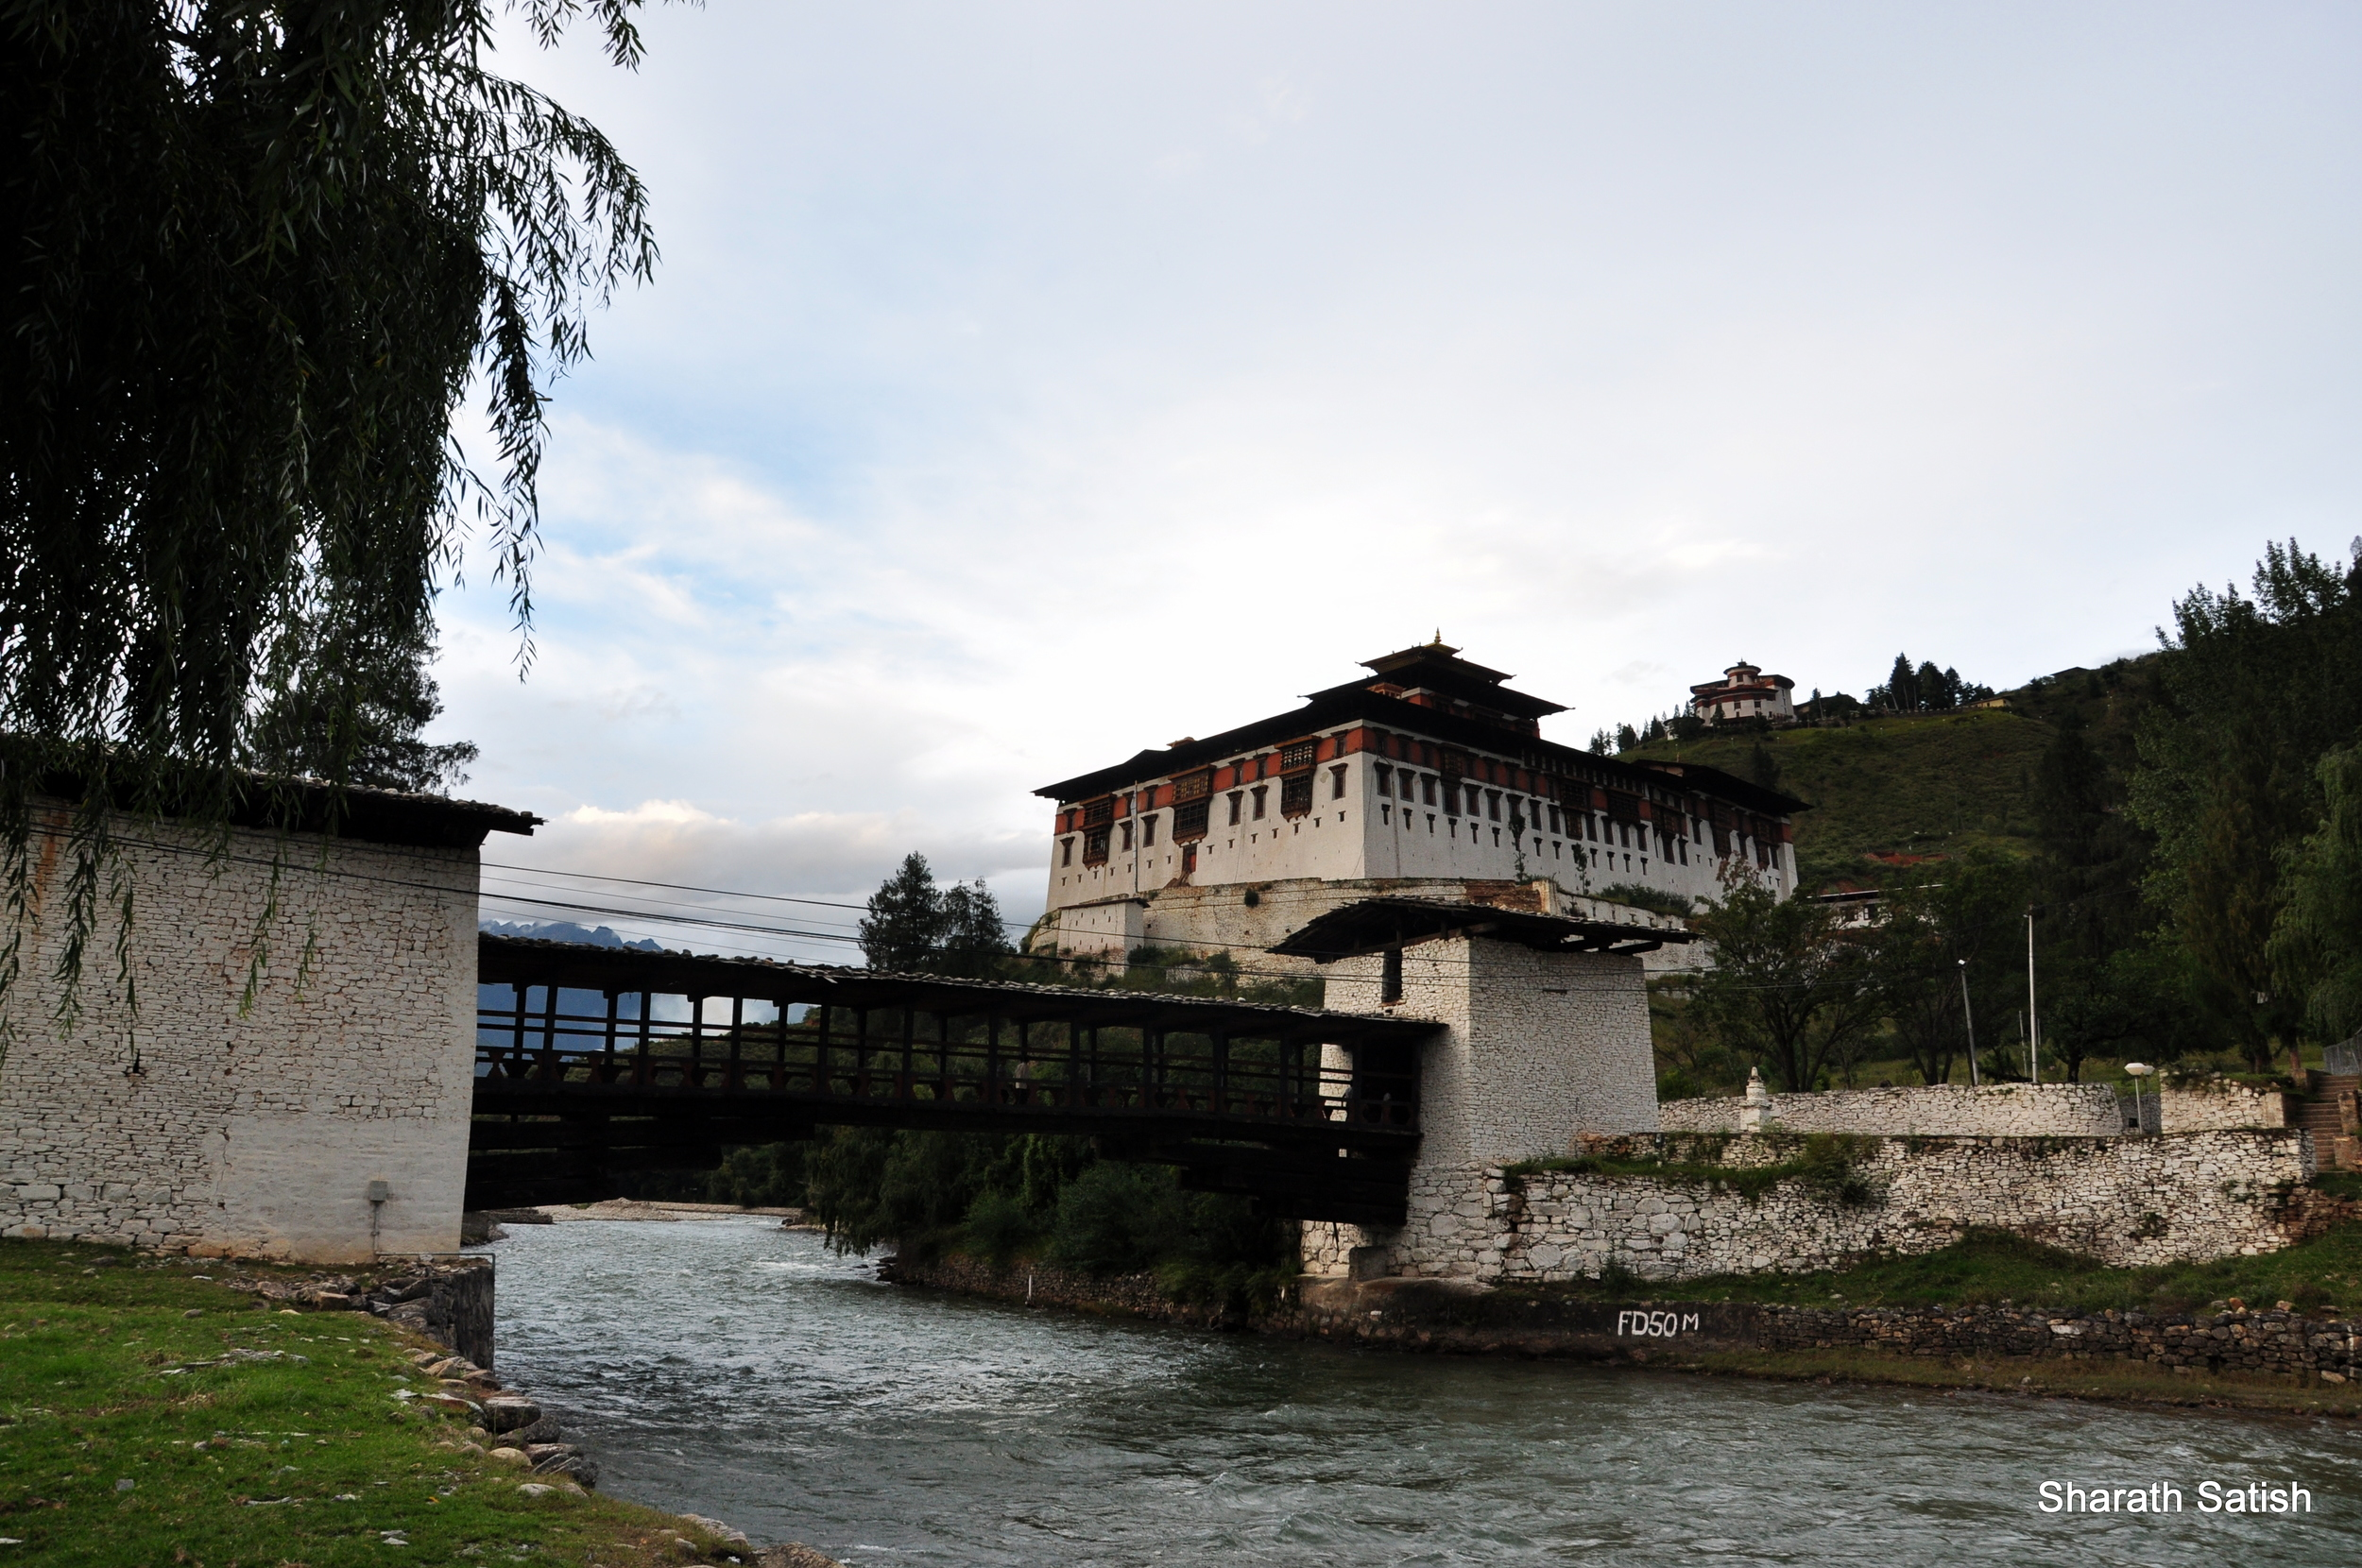 The bridge leading to it and the Rinpung Dzong (National Museum also visible at the back)